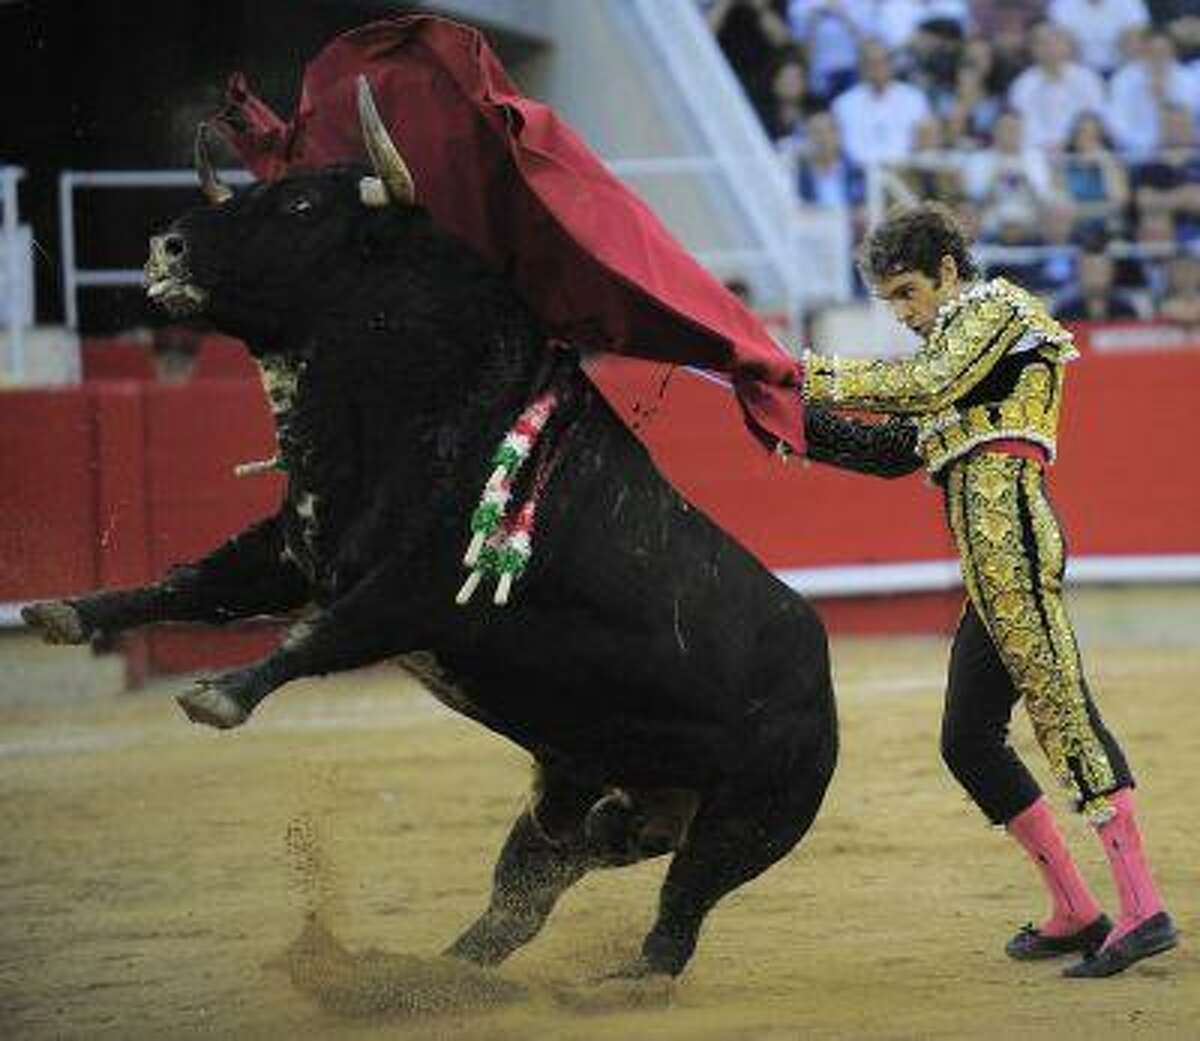 Spanish bullfighter Jose Tomas performs in the final bullfight to be held in the region of Catalonia at the Monumental bullring in Barcelona, Spain, Sunday, Sept. 25, 2011. Spain's powerful northeastern region of Catalonia bids farewell Sunday to the country's emblematic tradition of bullfighting with a final bash at the Barcelona bullring. (AP Photo/Manu Fernandez)